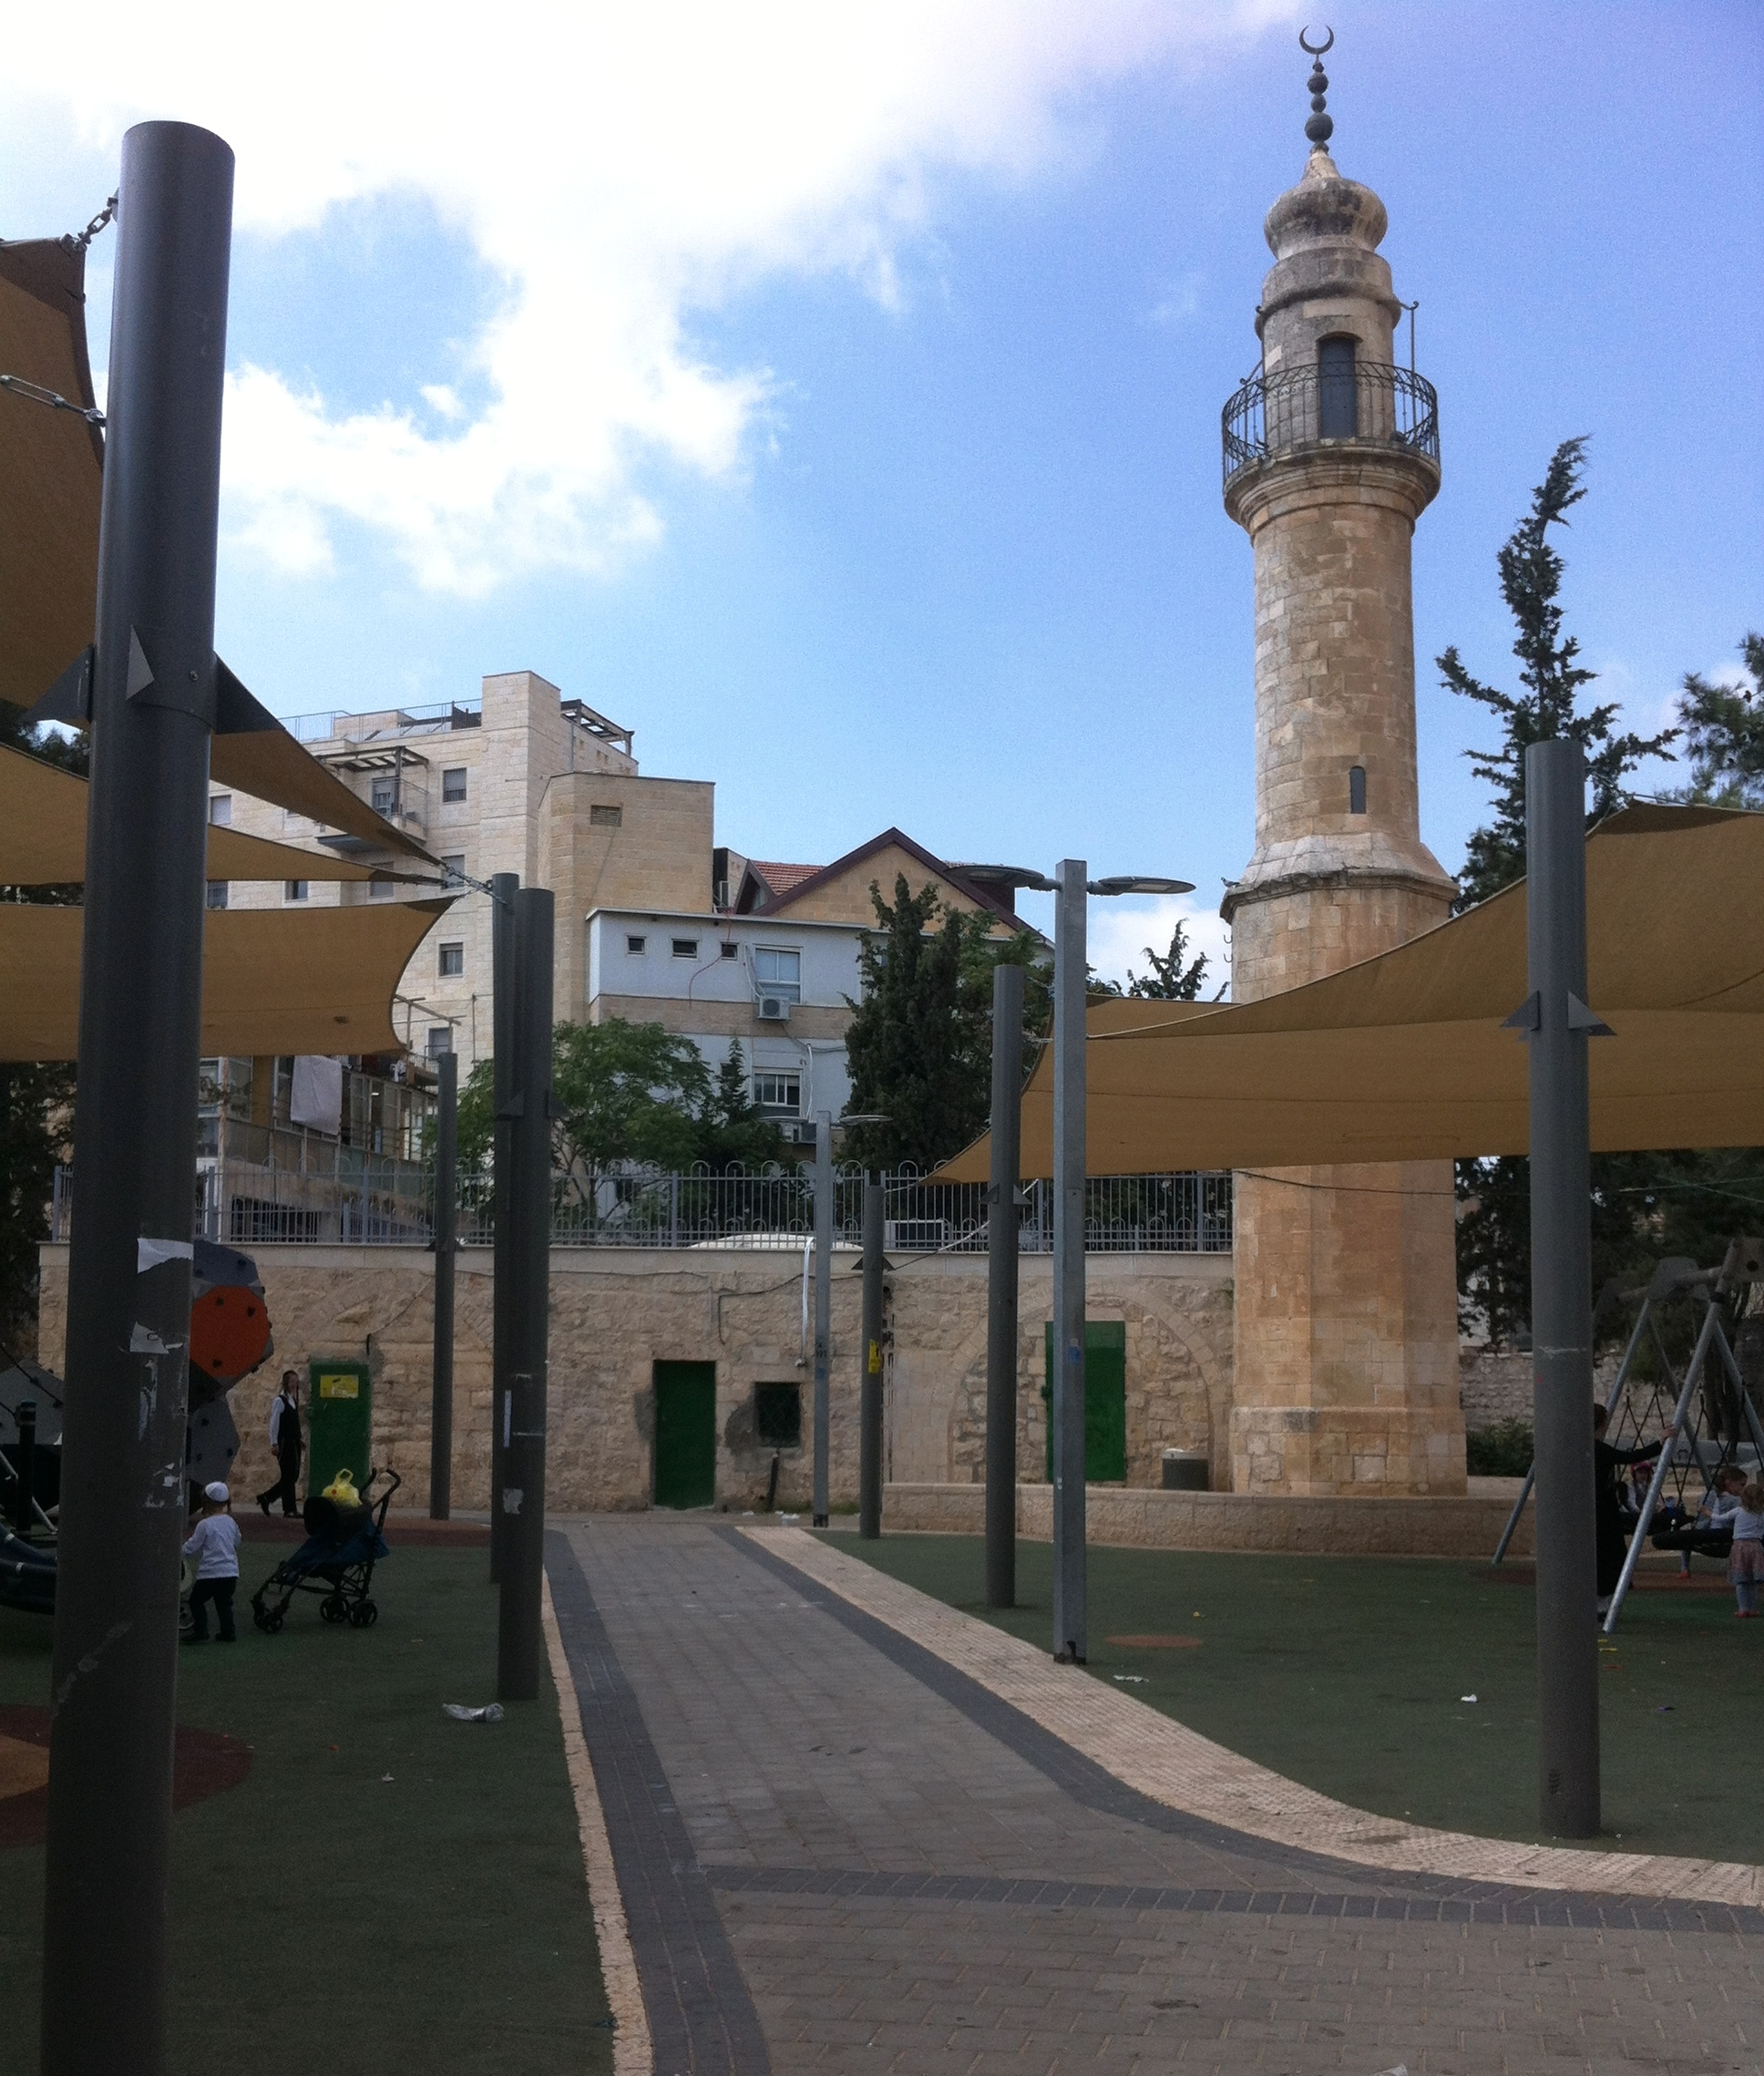 Playground Jerusalem, Israel. August 2018.